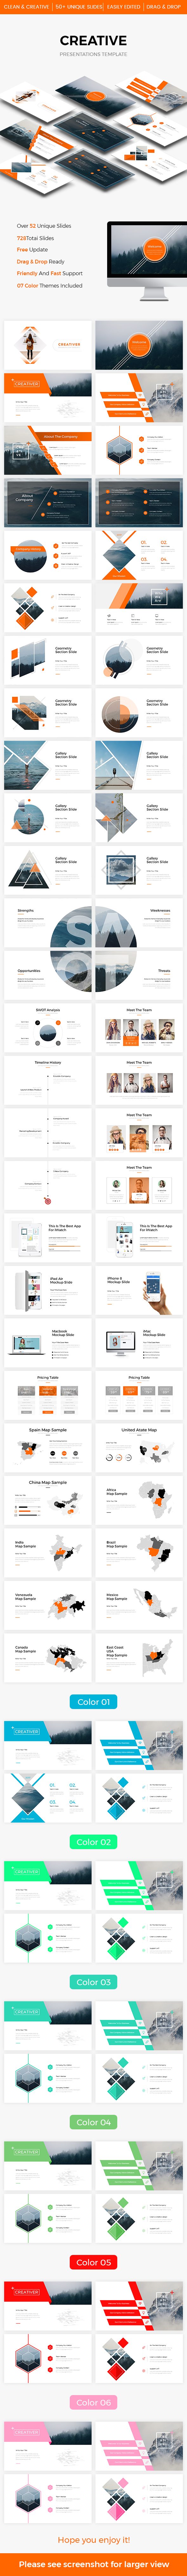 Creative Powerpoint Template 2017 - Creative PowerPoint Templates